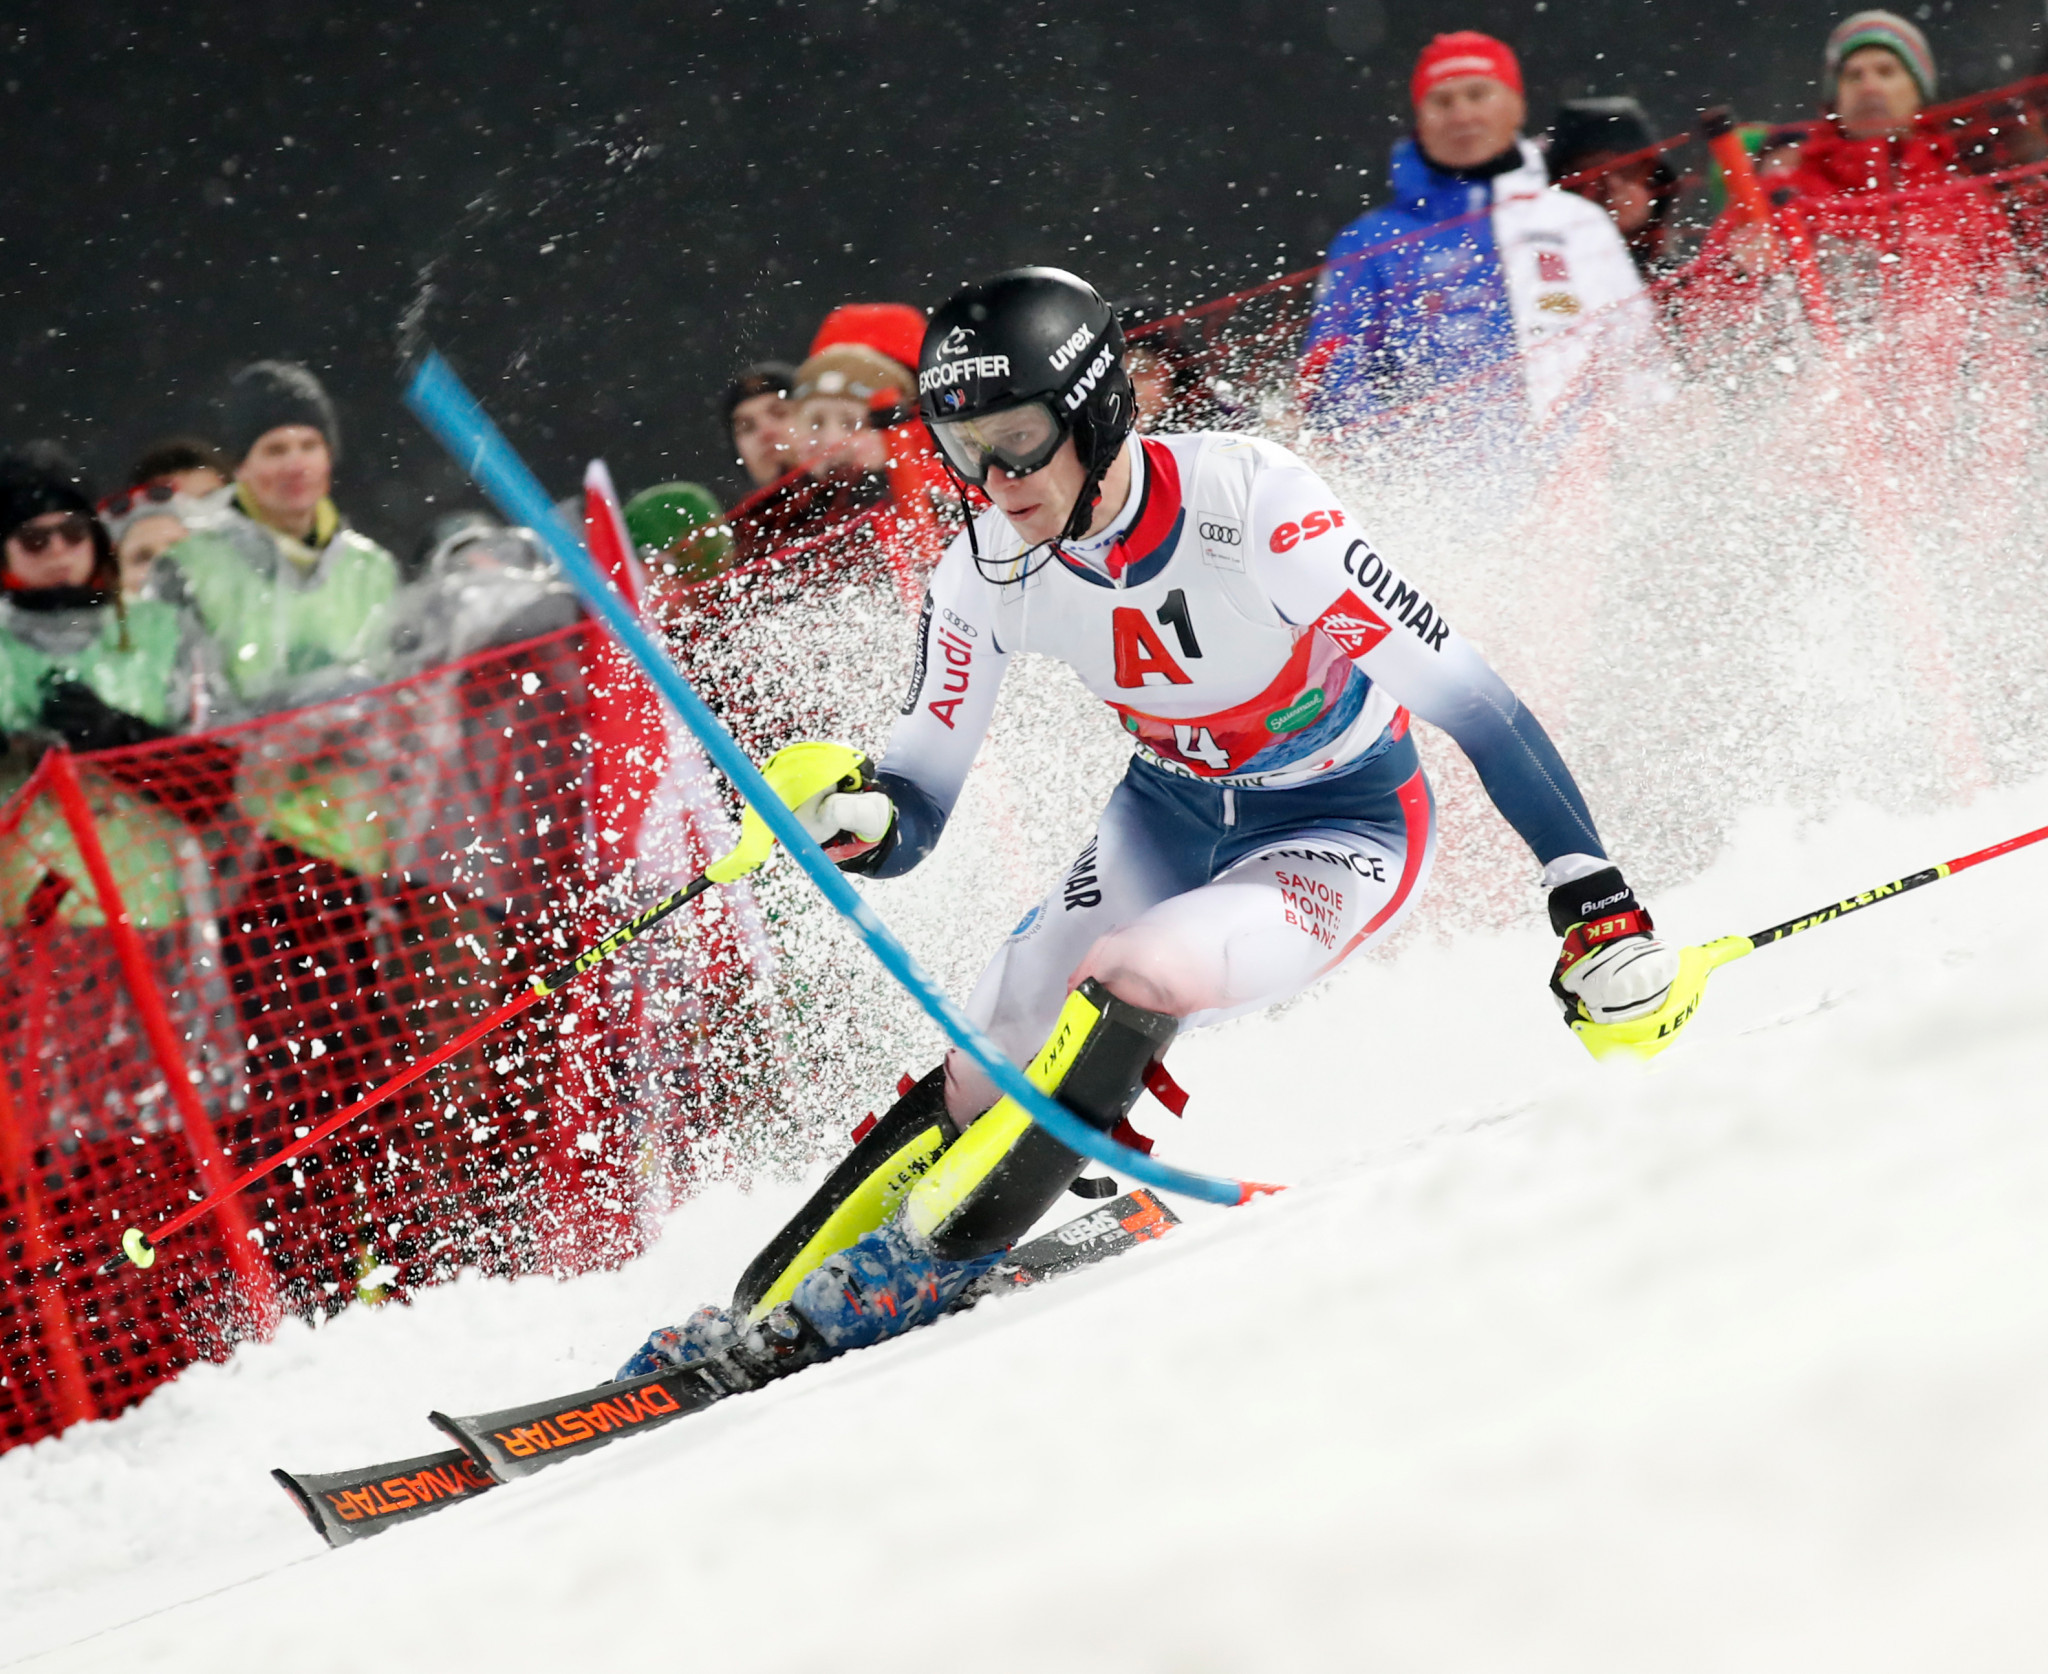 Noël hoping for home boost in FIS Alpine Ski World Cup slalom at Chamonix